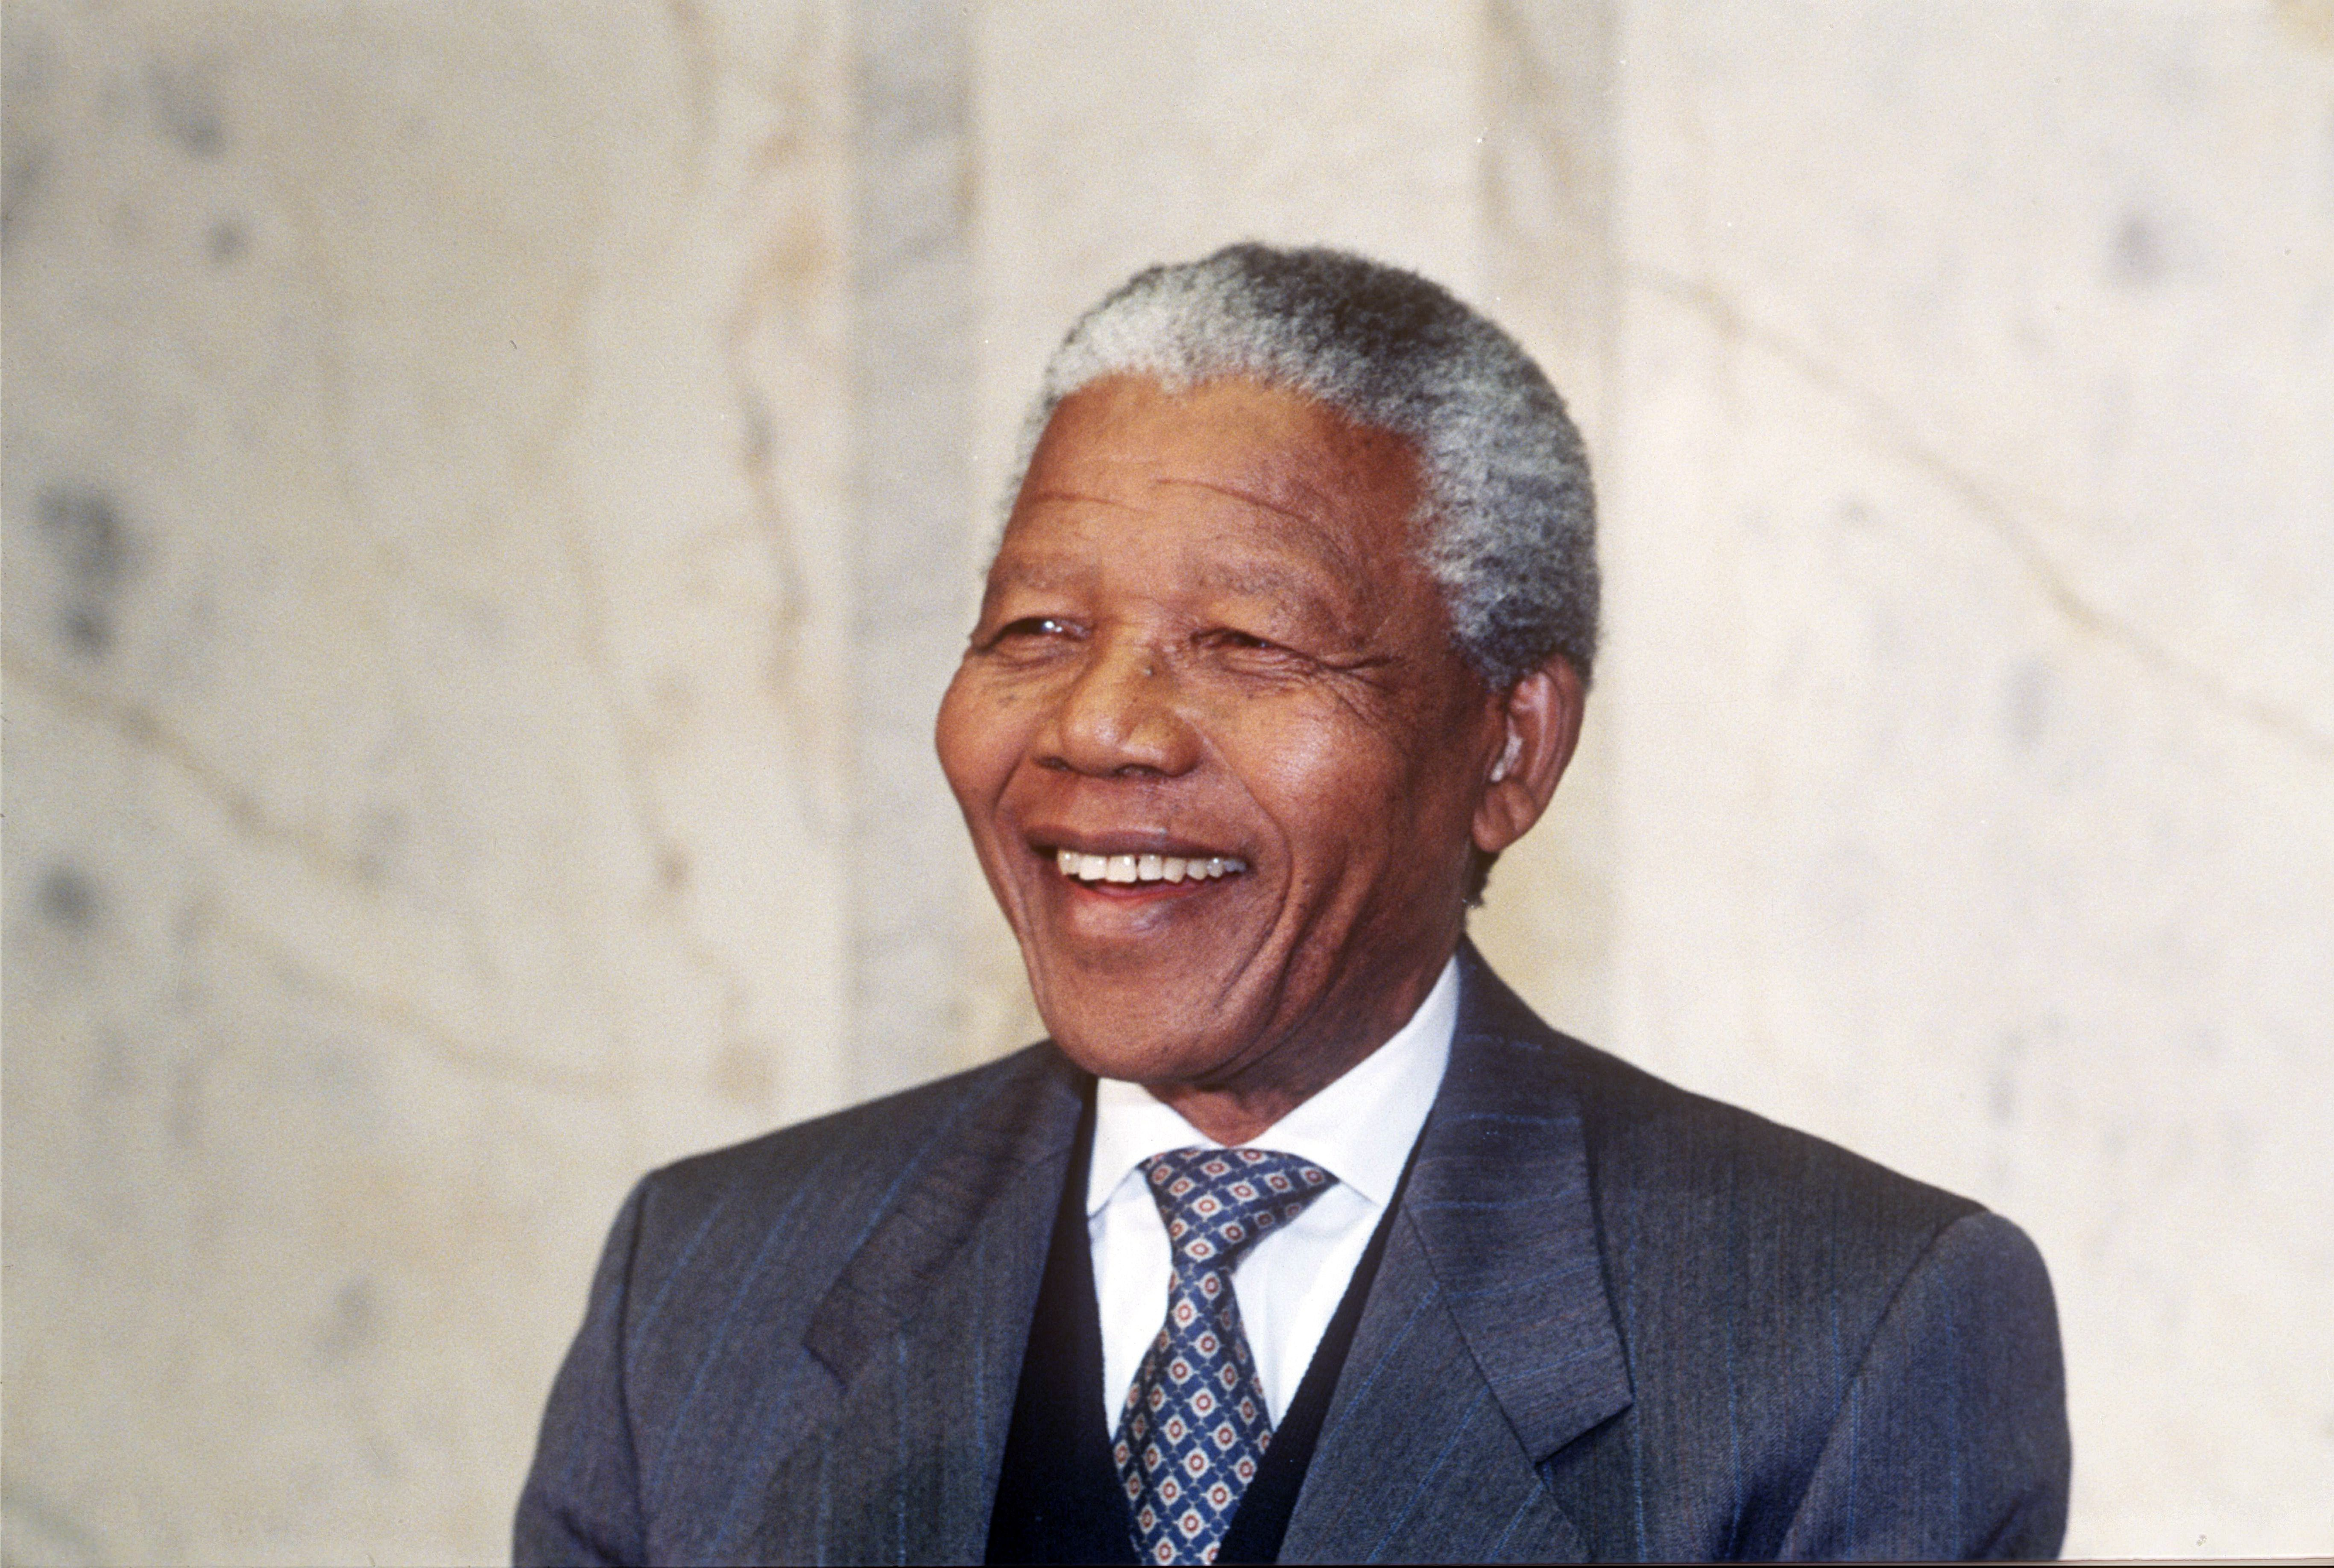 Mandatory Credit: Photo by Ibl/Shutterstock (223659b) Nelson Mandela F W DE KLERK AND NELSON MANDELA MEETING KING CARL GUSTAF OF SWEDEN IN STOCKHOLM, SWEDEN - 1993 President of South Africa from 1994 to 1999